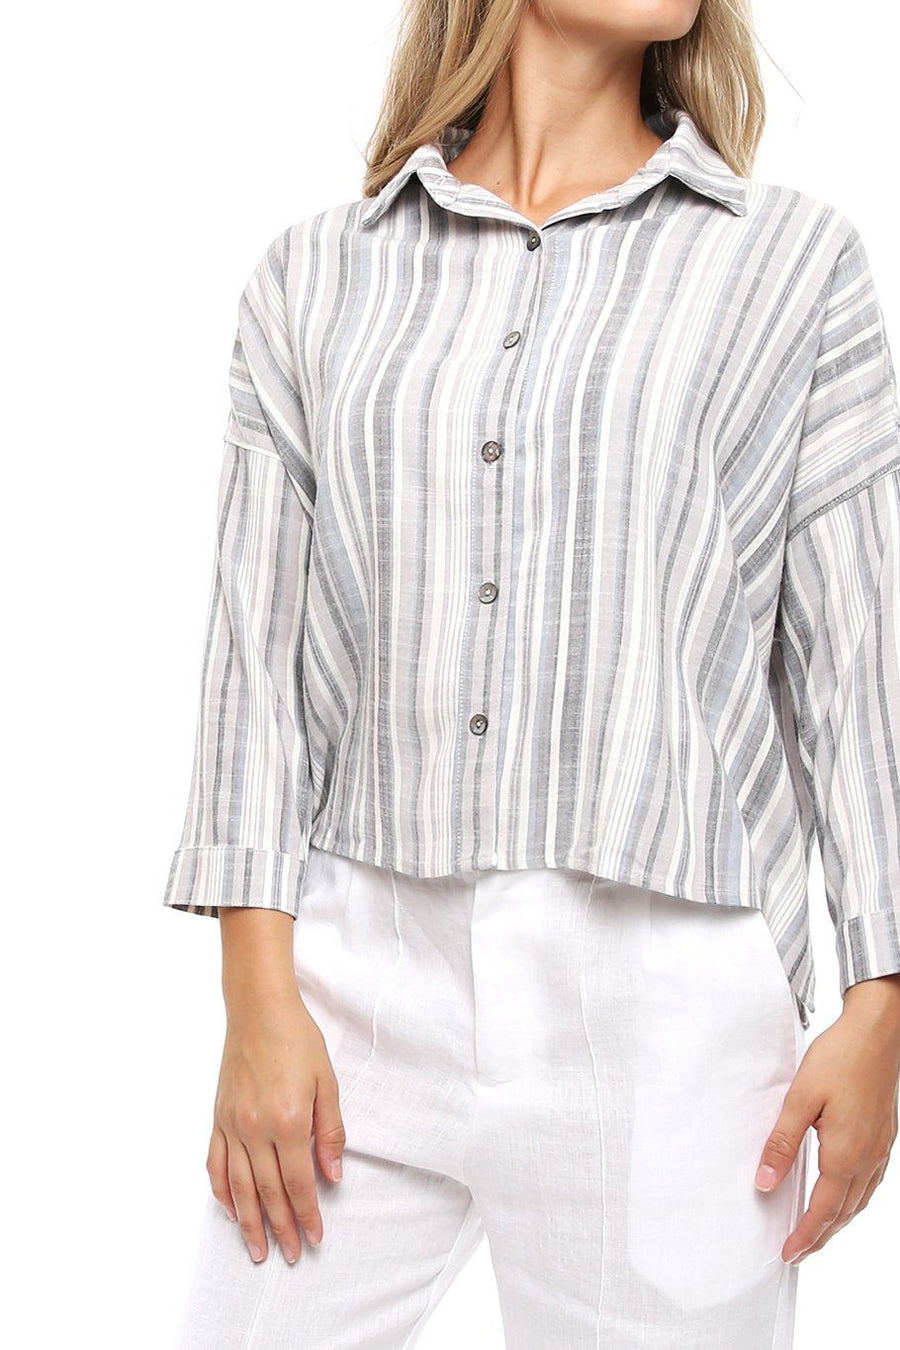 Antigua Top - Vintage Stripe - Shore